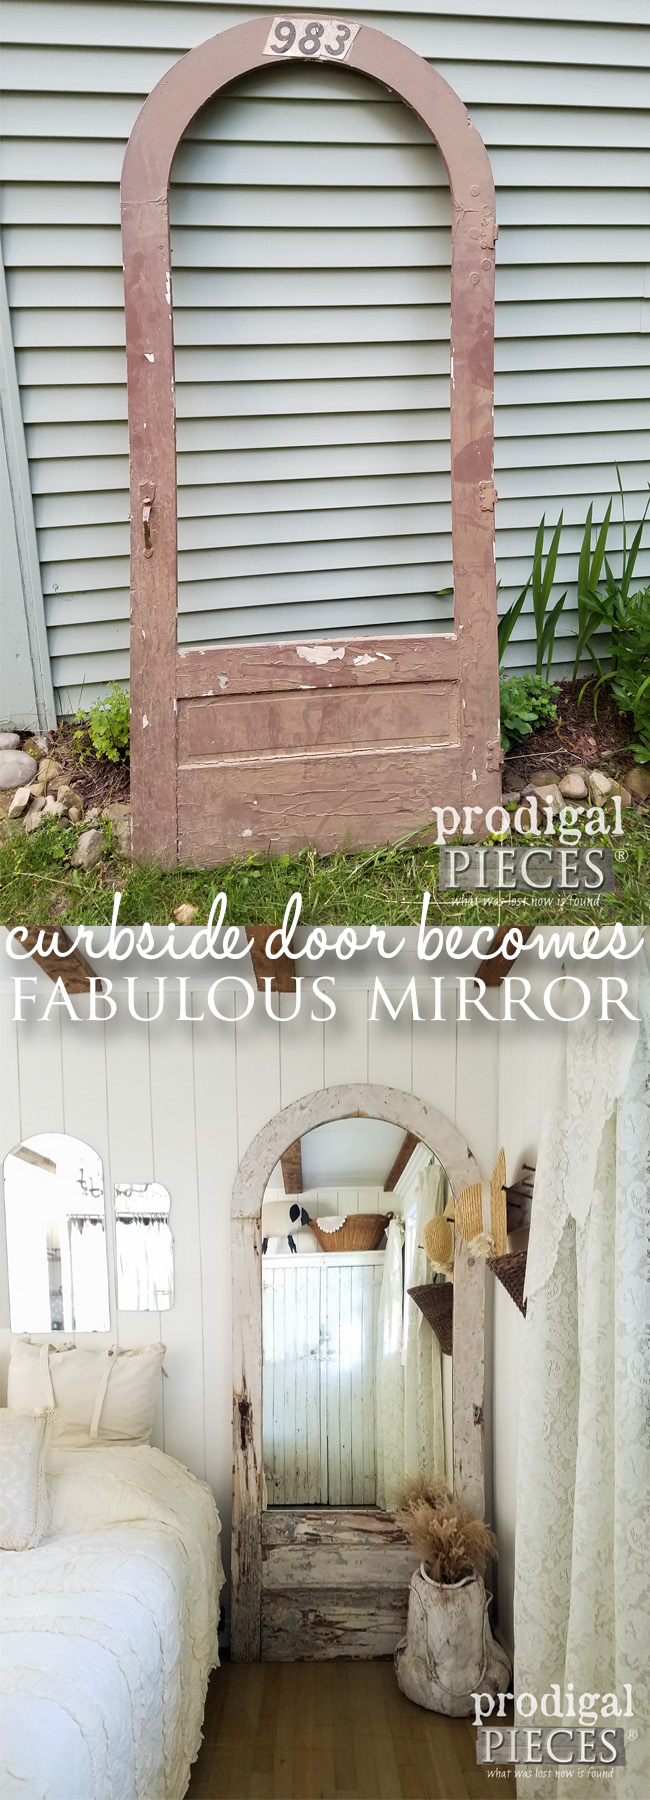 How to Turn a Curbside Door into a Mirror for Farmhouse Decor by Prodigal Pieces | prodigalpieces.com